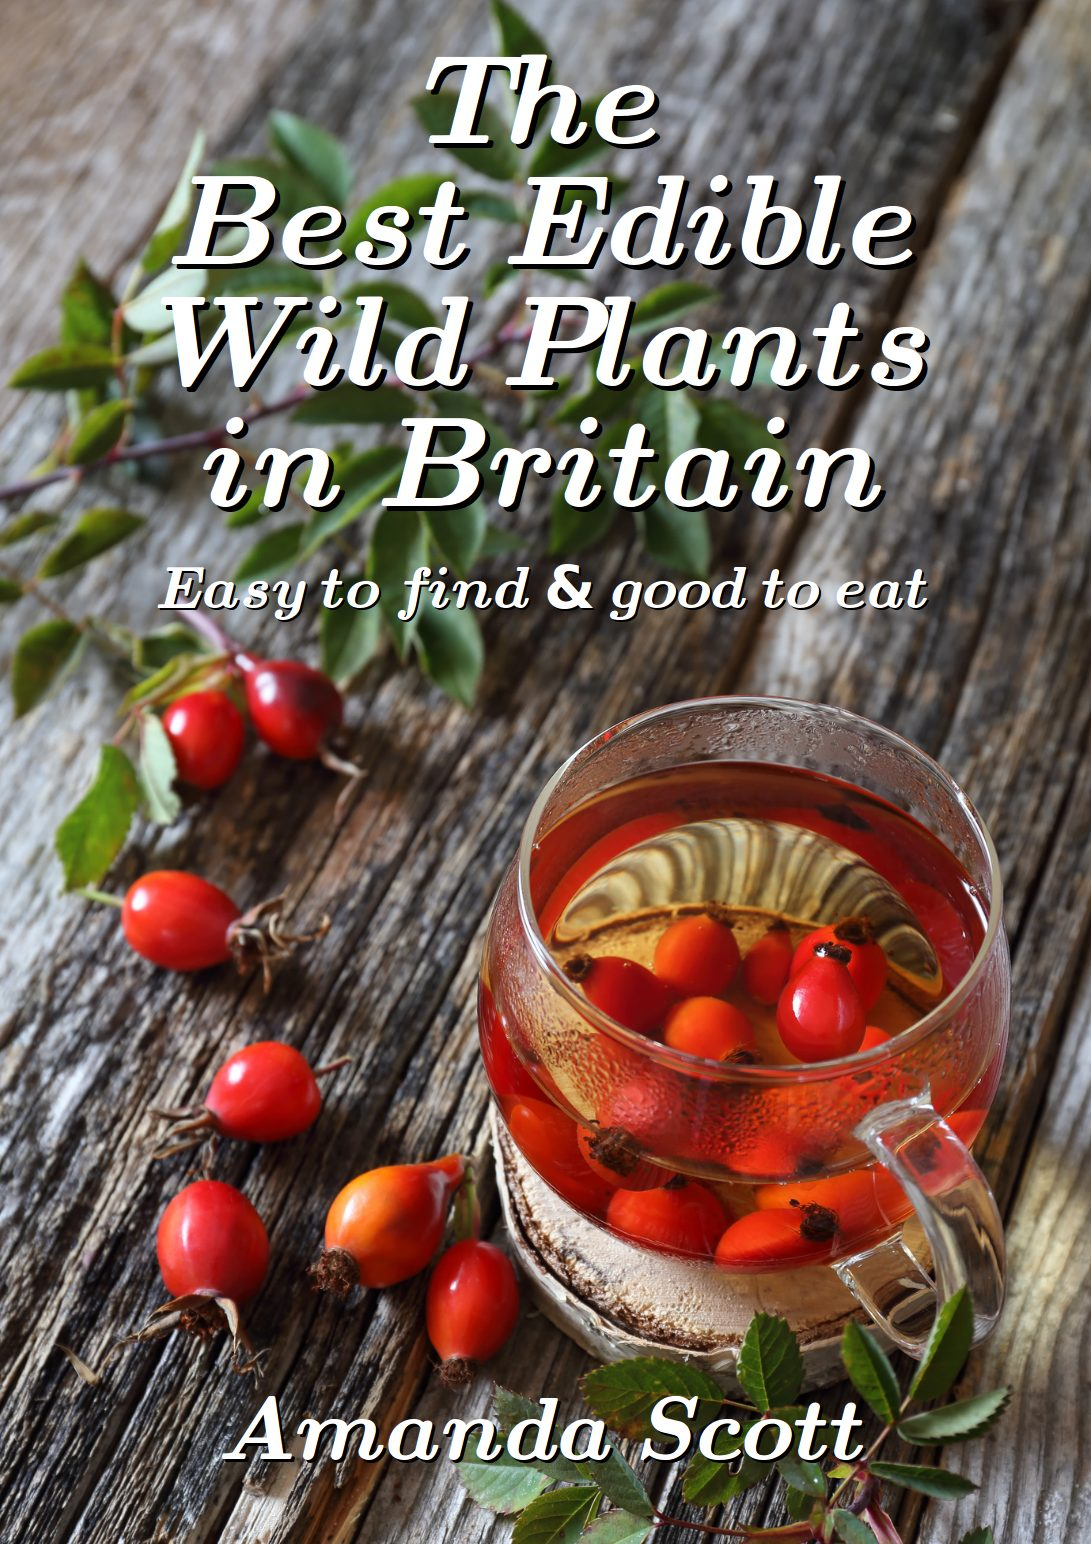 The Best Edible Wild Plants!